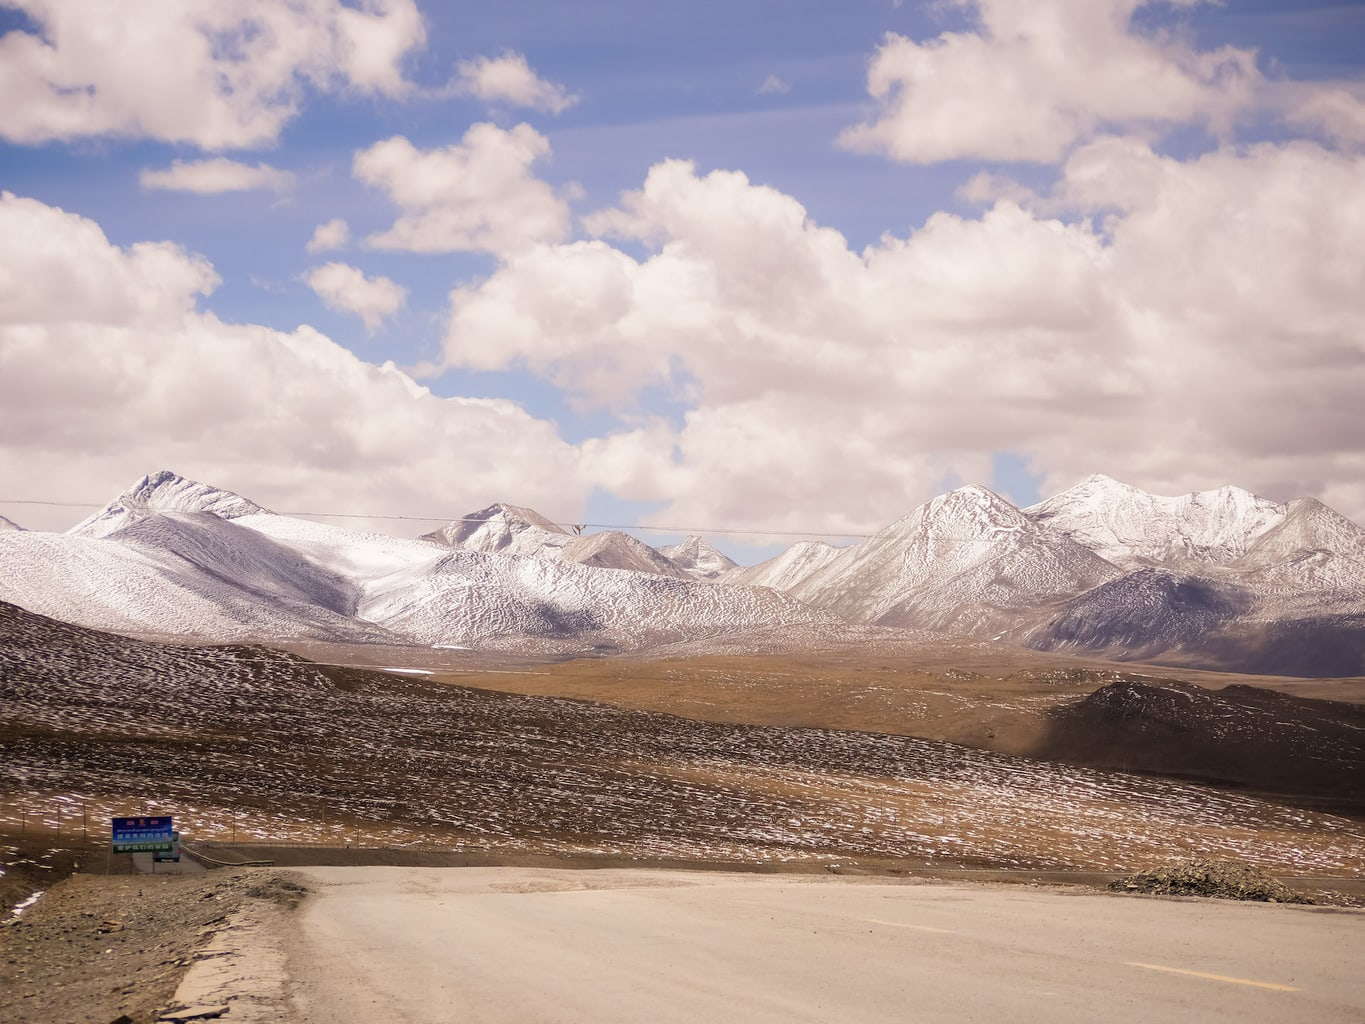 The road to the Himalayas